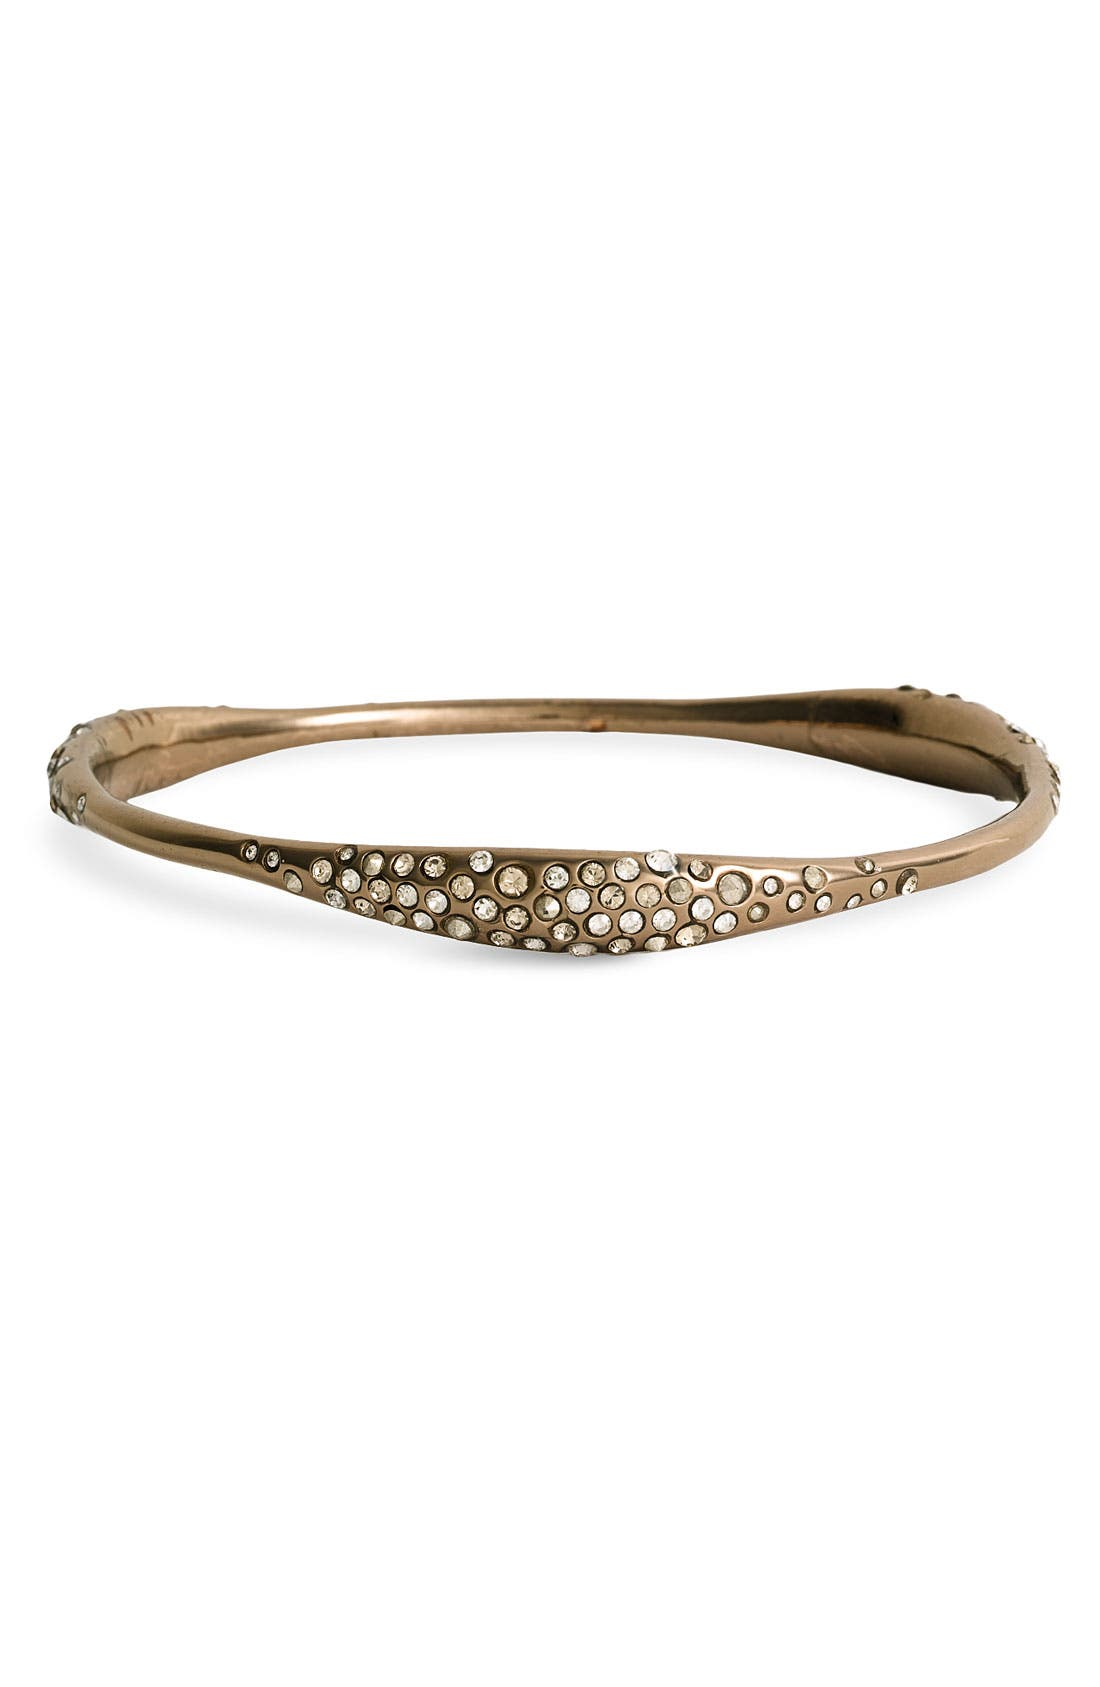 Alternate Image 1 Selected - Alexis Bittar 'Miss Havisham' Encrusted Skinny Bangle (Nordstrom Exclusive)